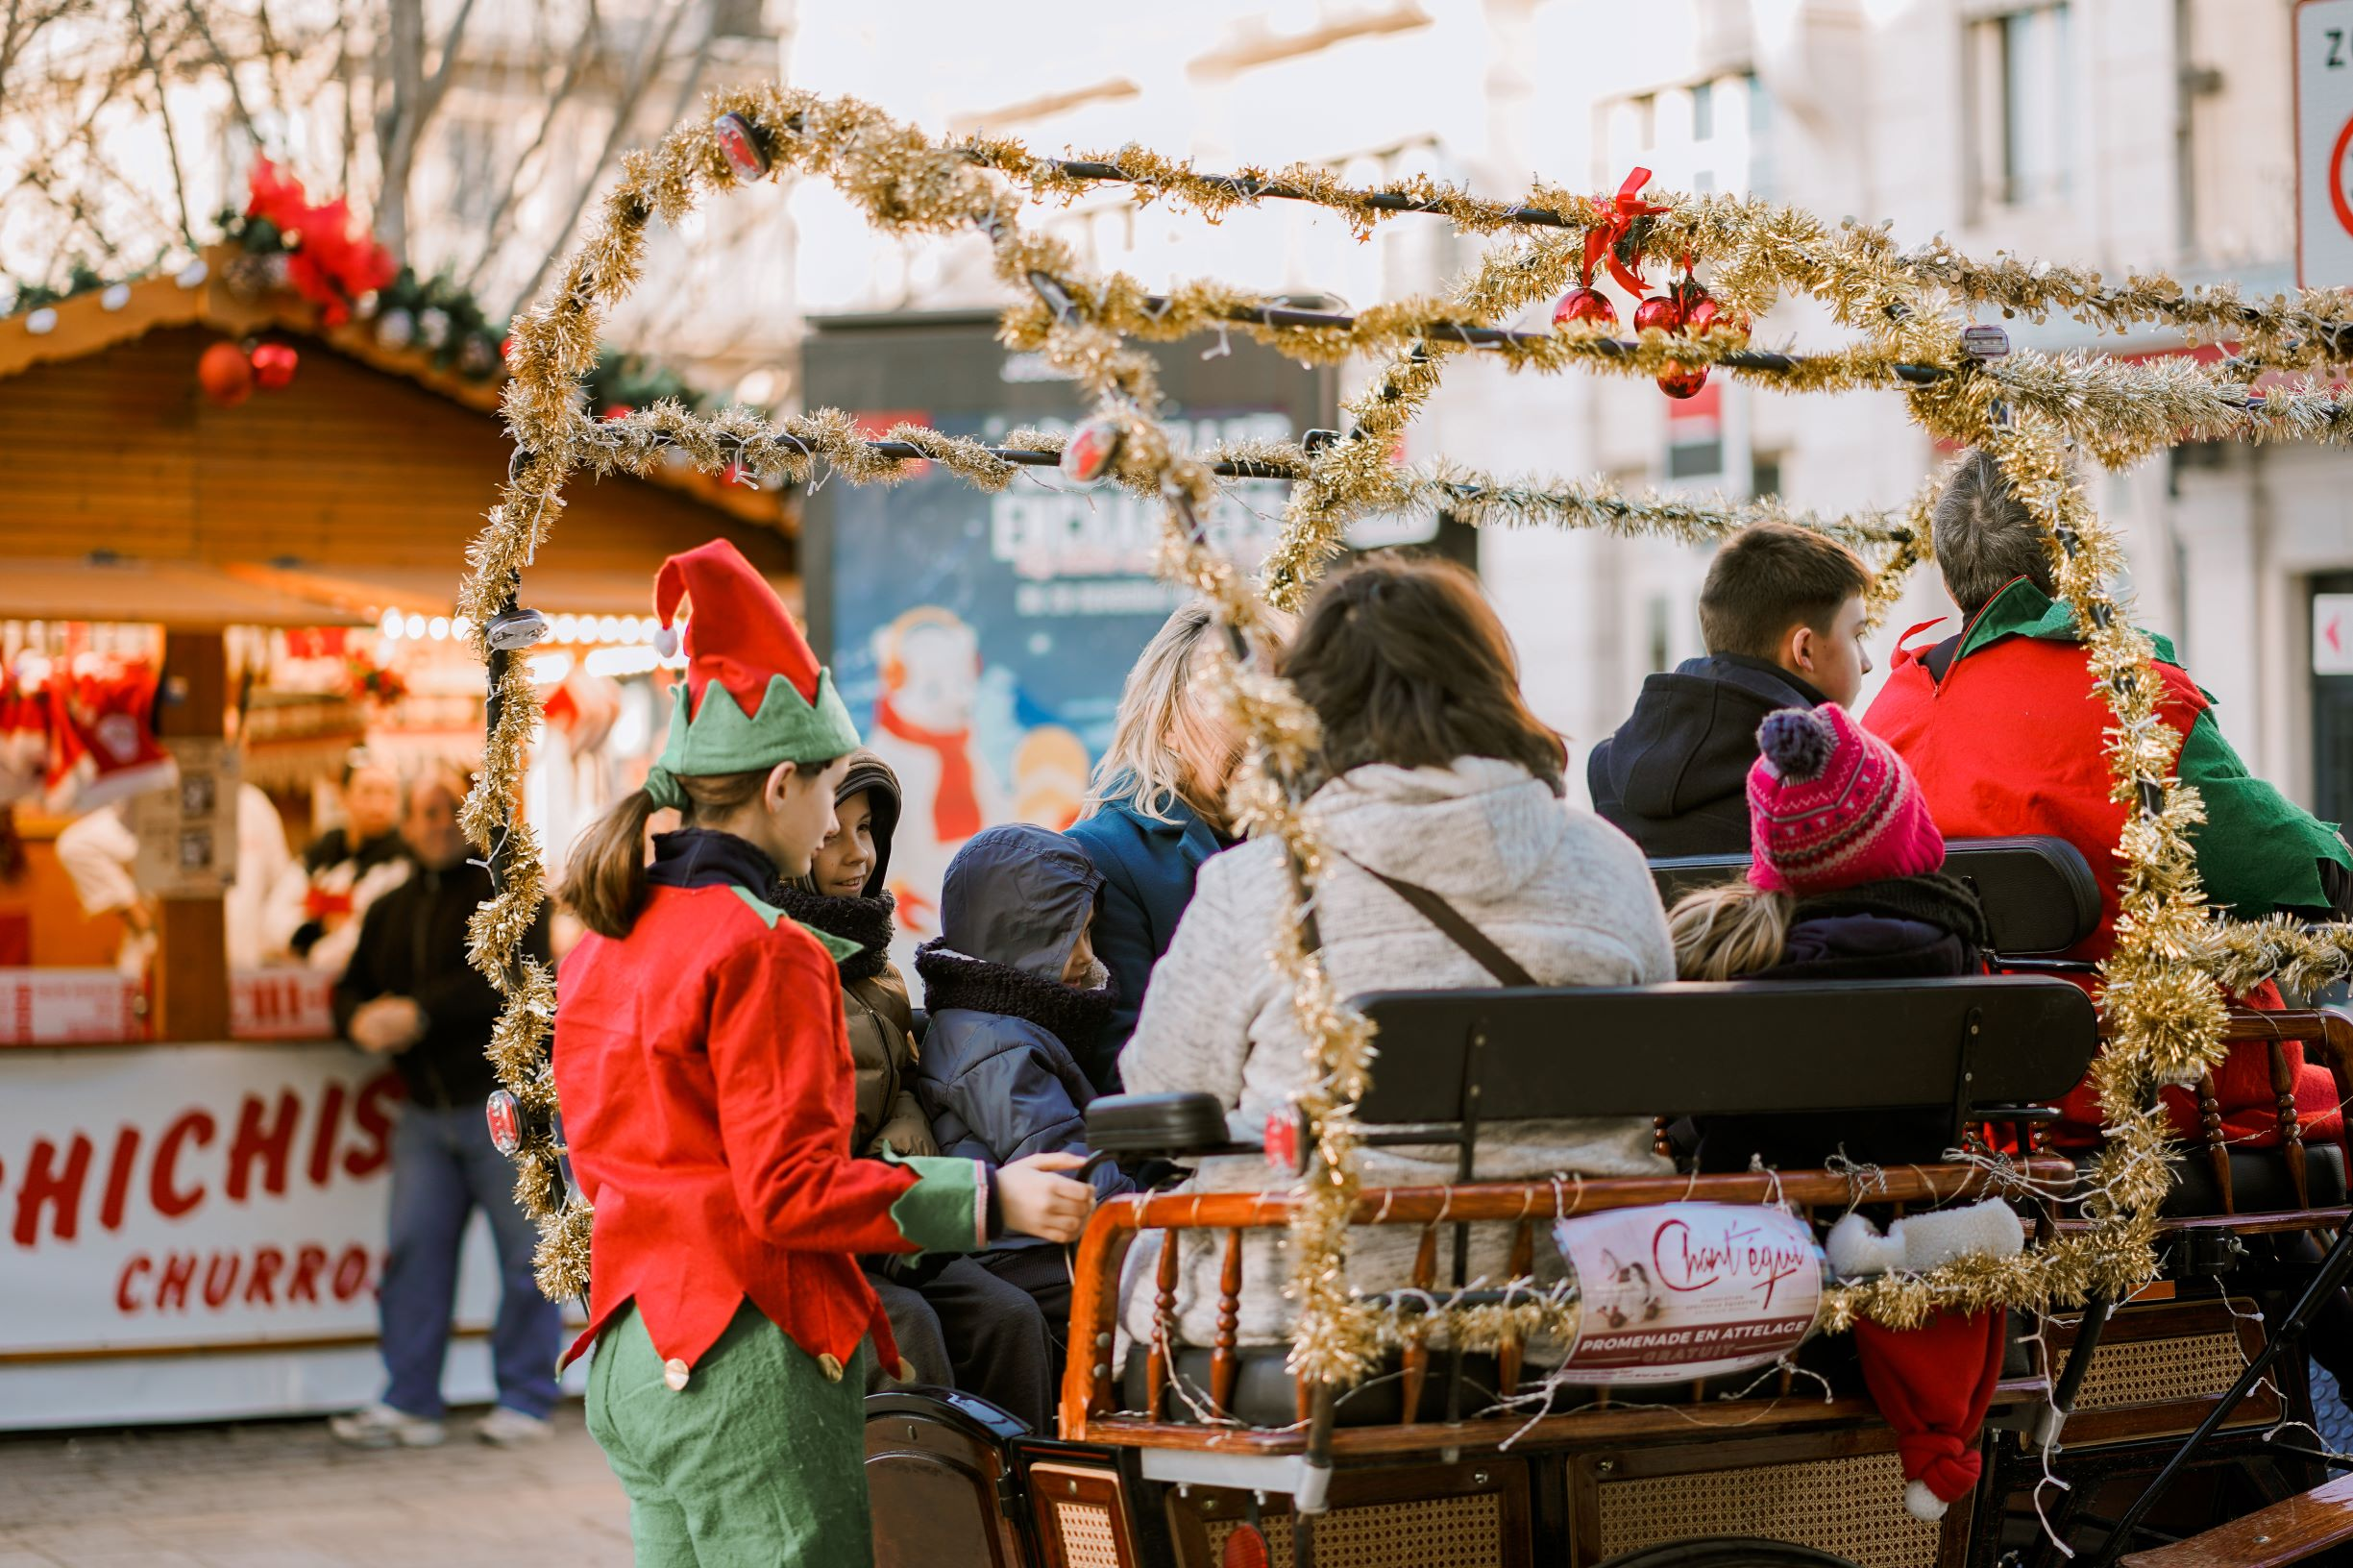 Photo of carriage rides with an elf at a Christmas market.